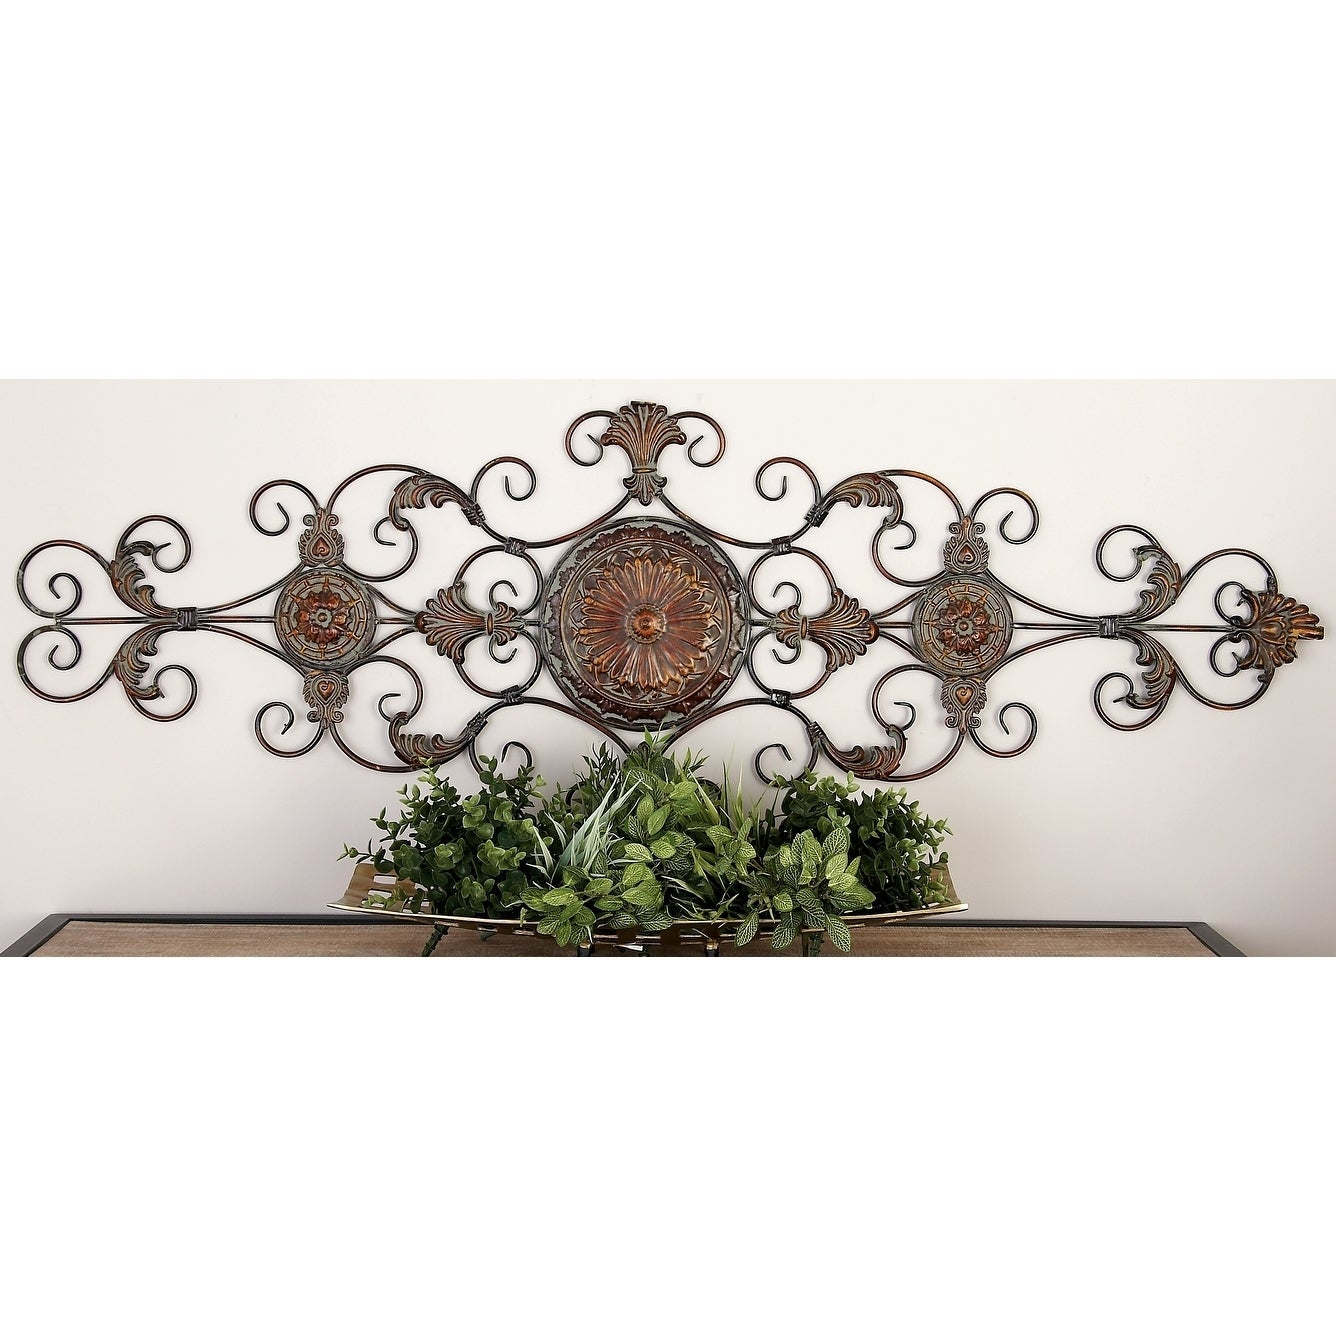 Traditional 55 Inch Scroll And Acanthus Leaf Wall Decorstudio 350 – Bronze Inside Scroll Leaf Wall Decor (View 29 of 30)